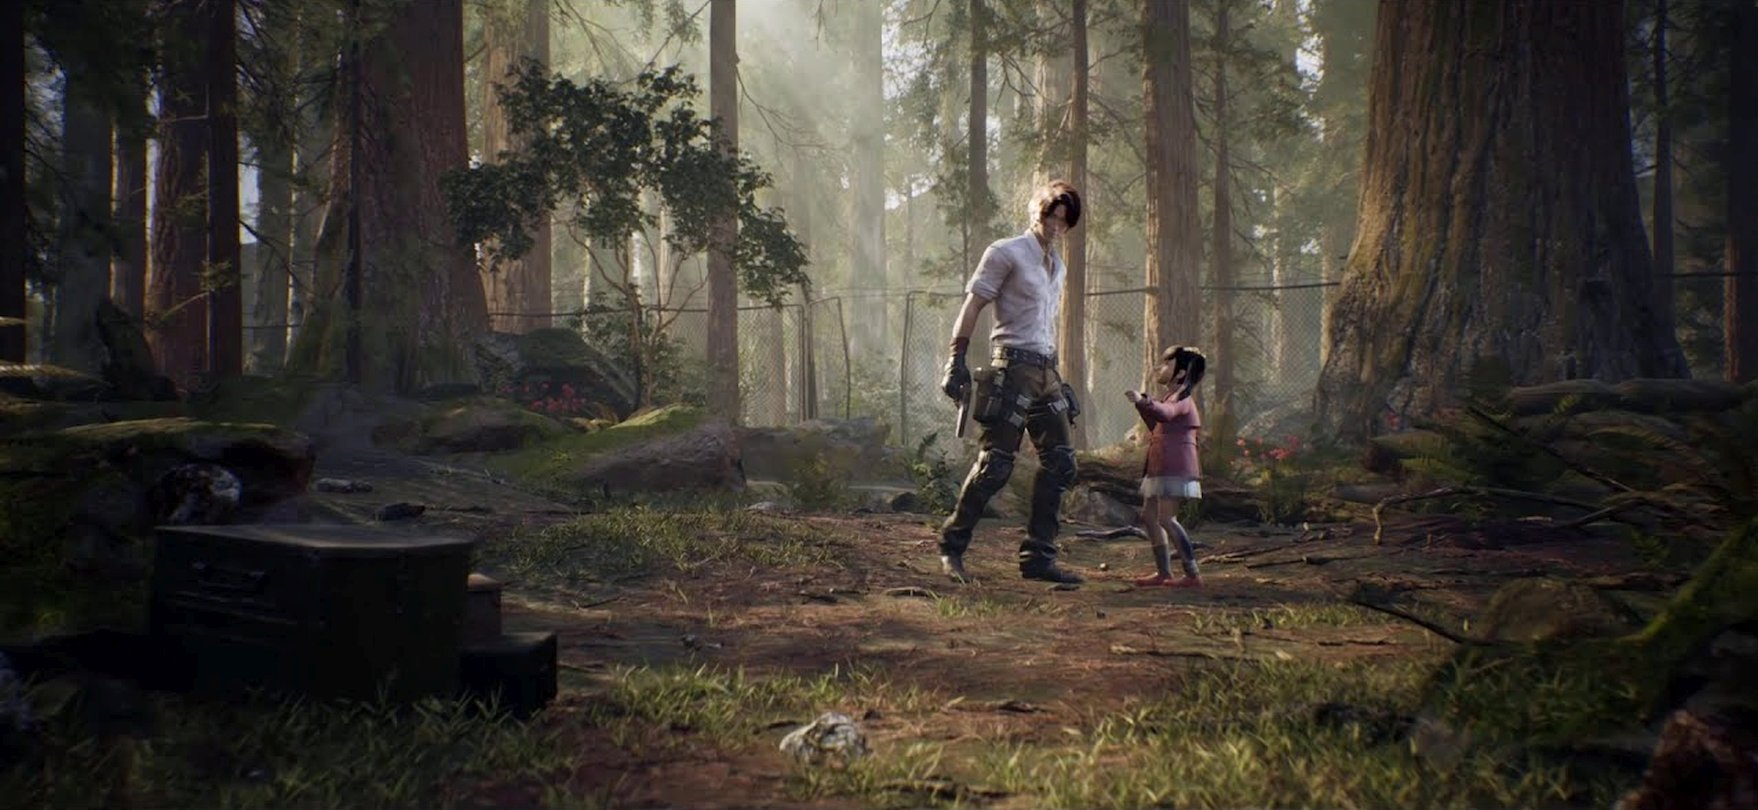 Mobile Zombie Survival Game LifeAfter Season 3 Update Adds Open World And More